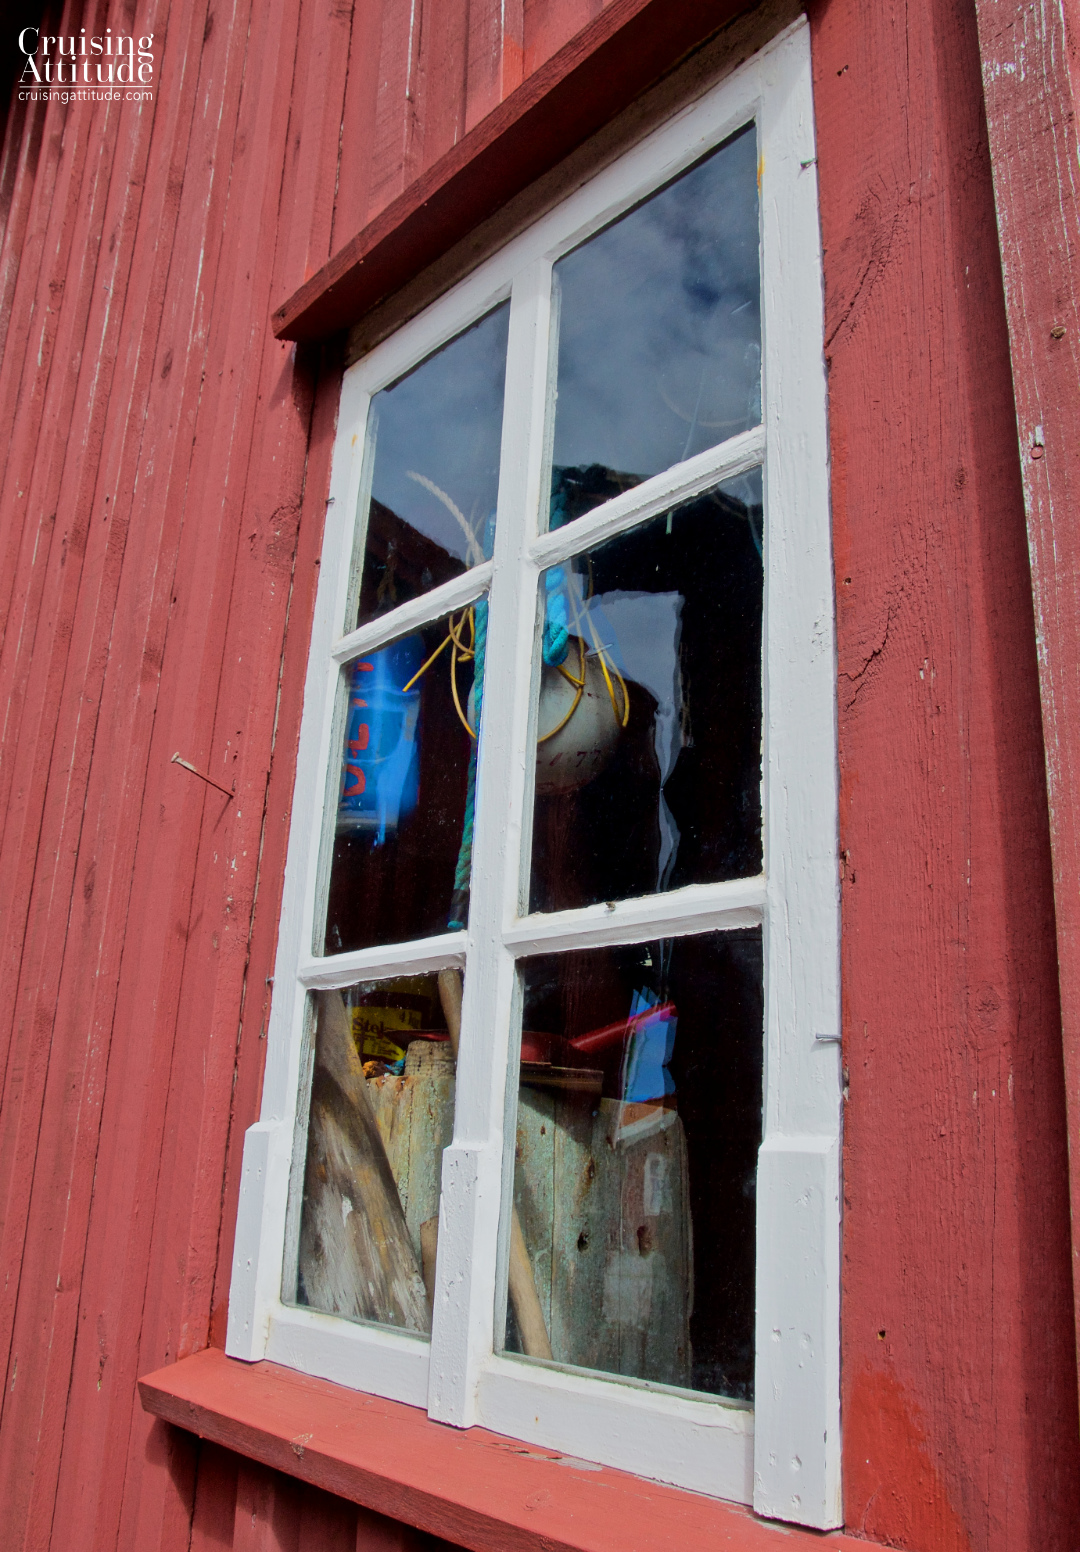 Looking into the window of a fishing cabin. Mollösund, Sweden | Cruising Attitude Sailing Blog - Discovery 55